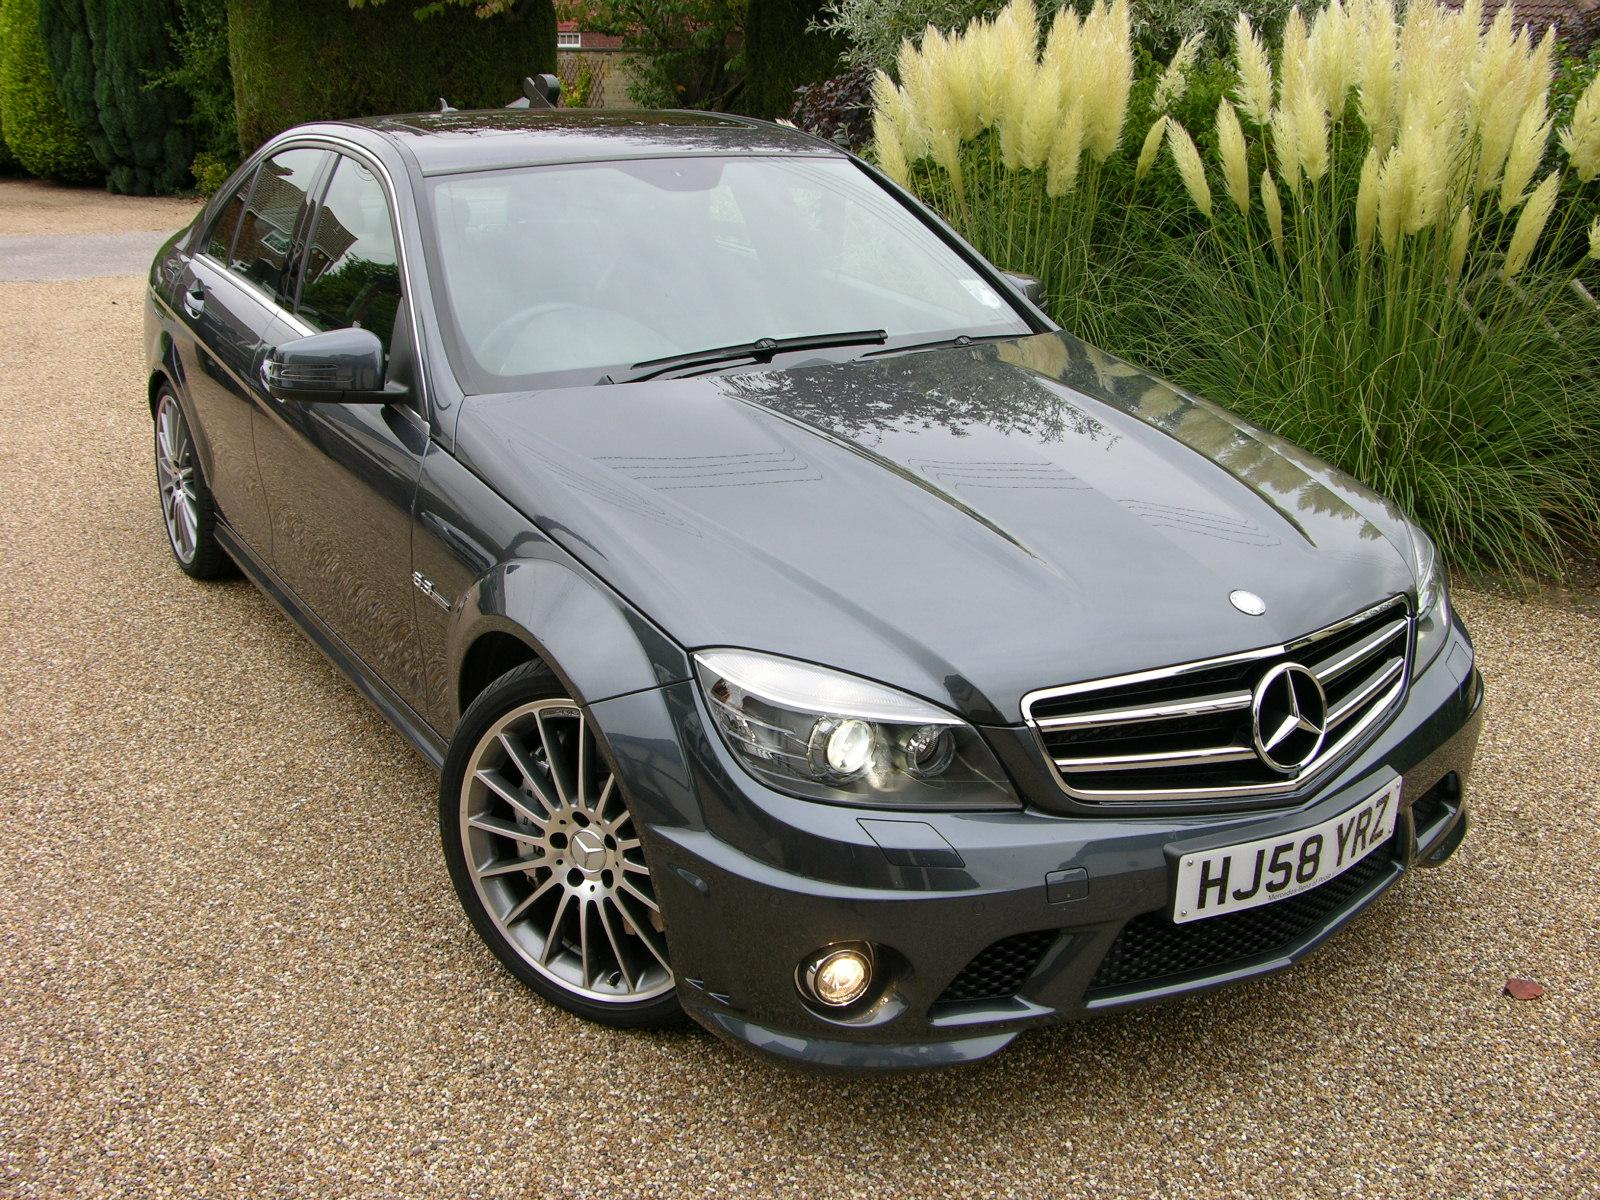 file 2008 mercedes benz c63 amg flickr the car spy 26. Black Bedroom Furniture Sets. Home Design Ideas